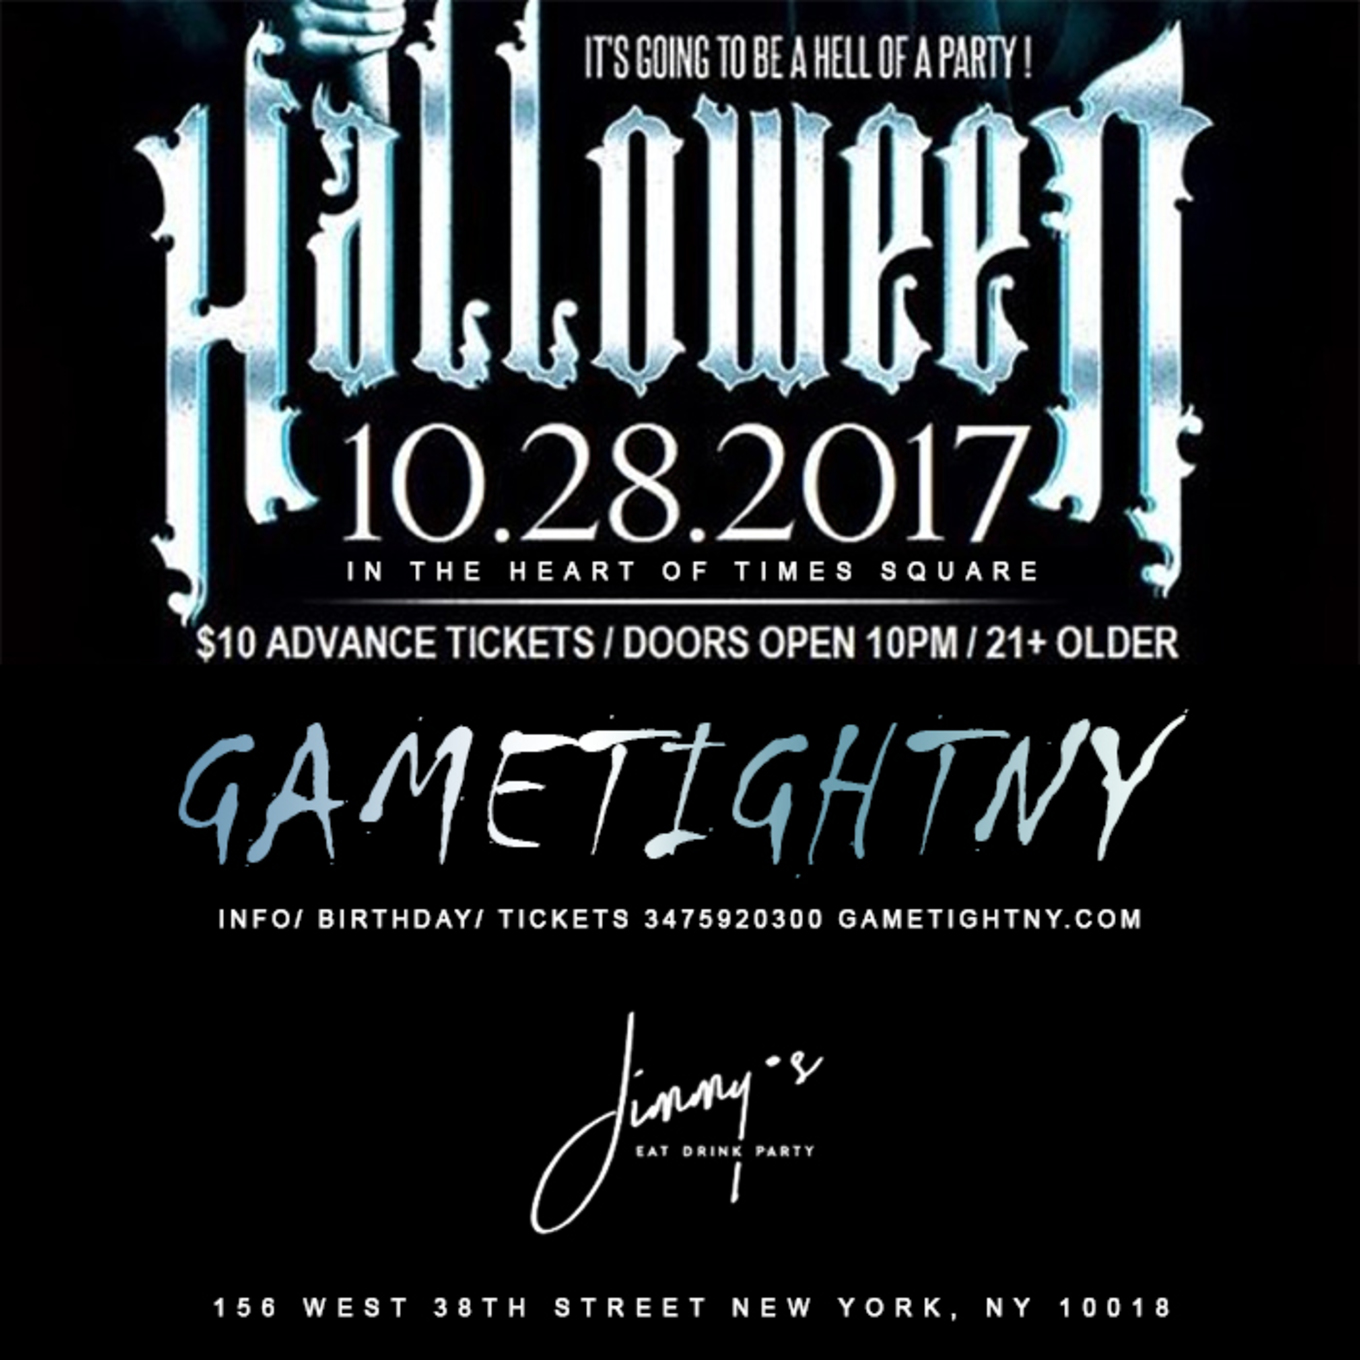 jimmy's nyc halloween party 2017 - jimmys nyc, new york, ny